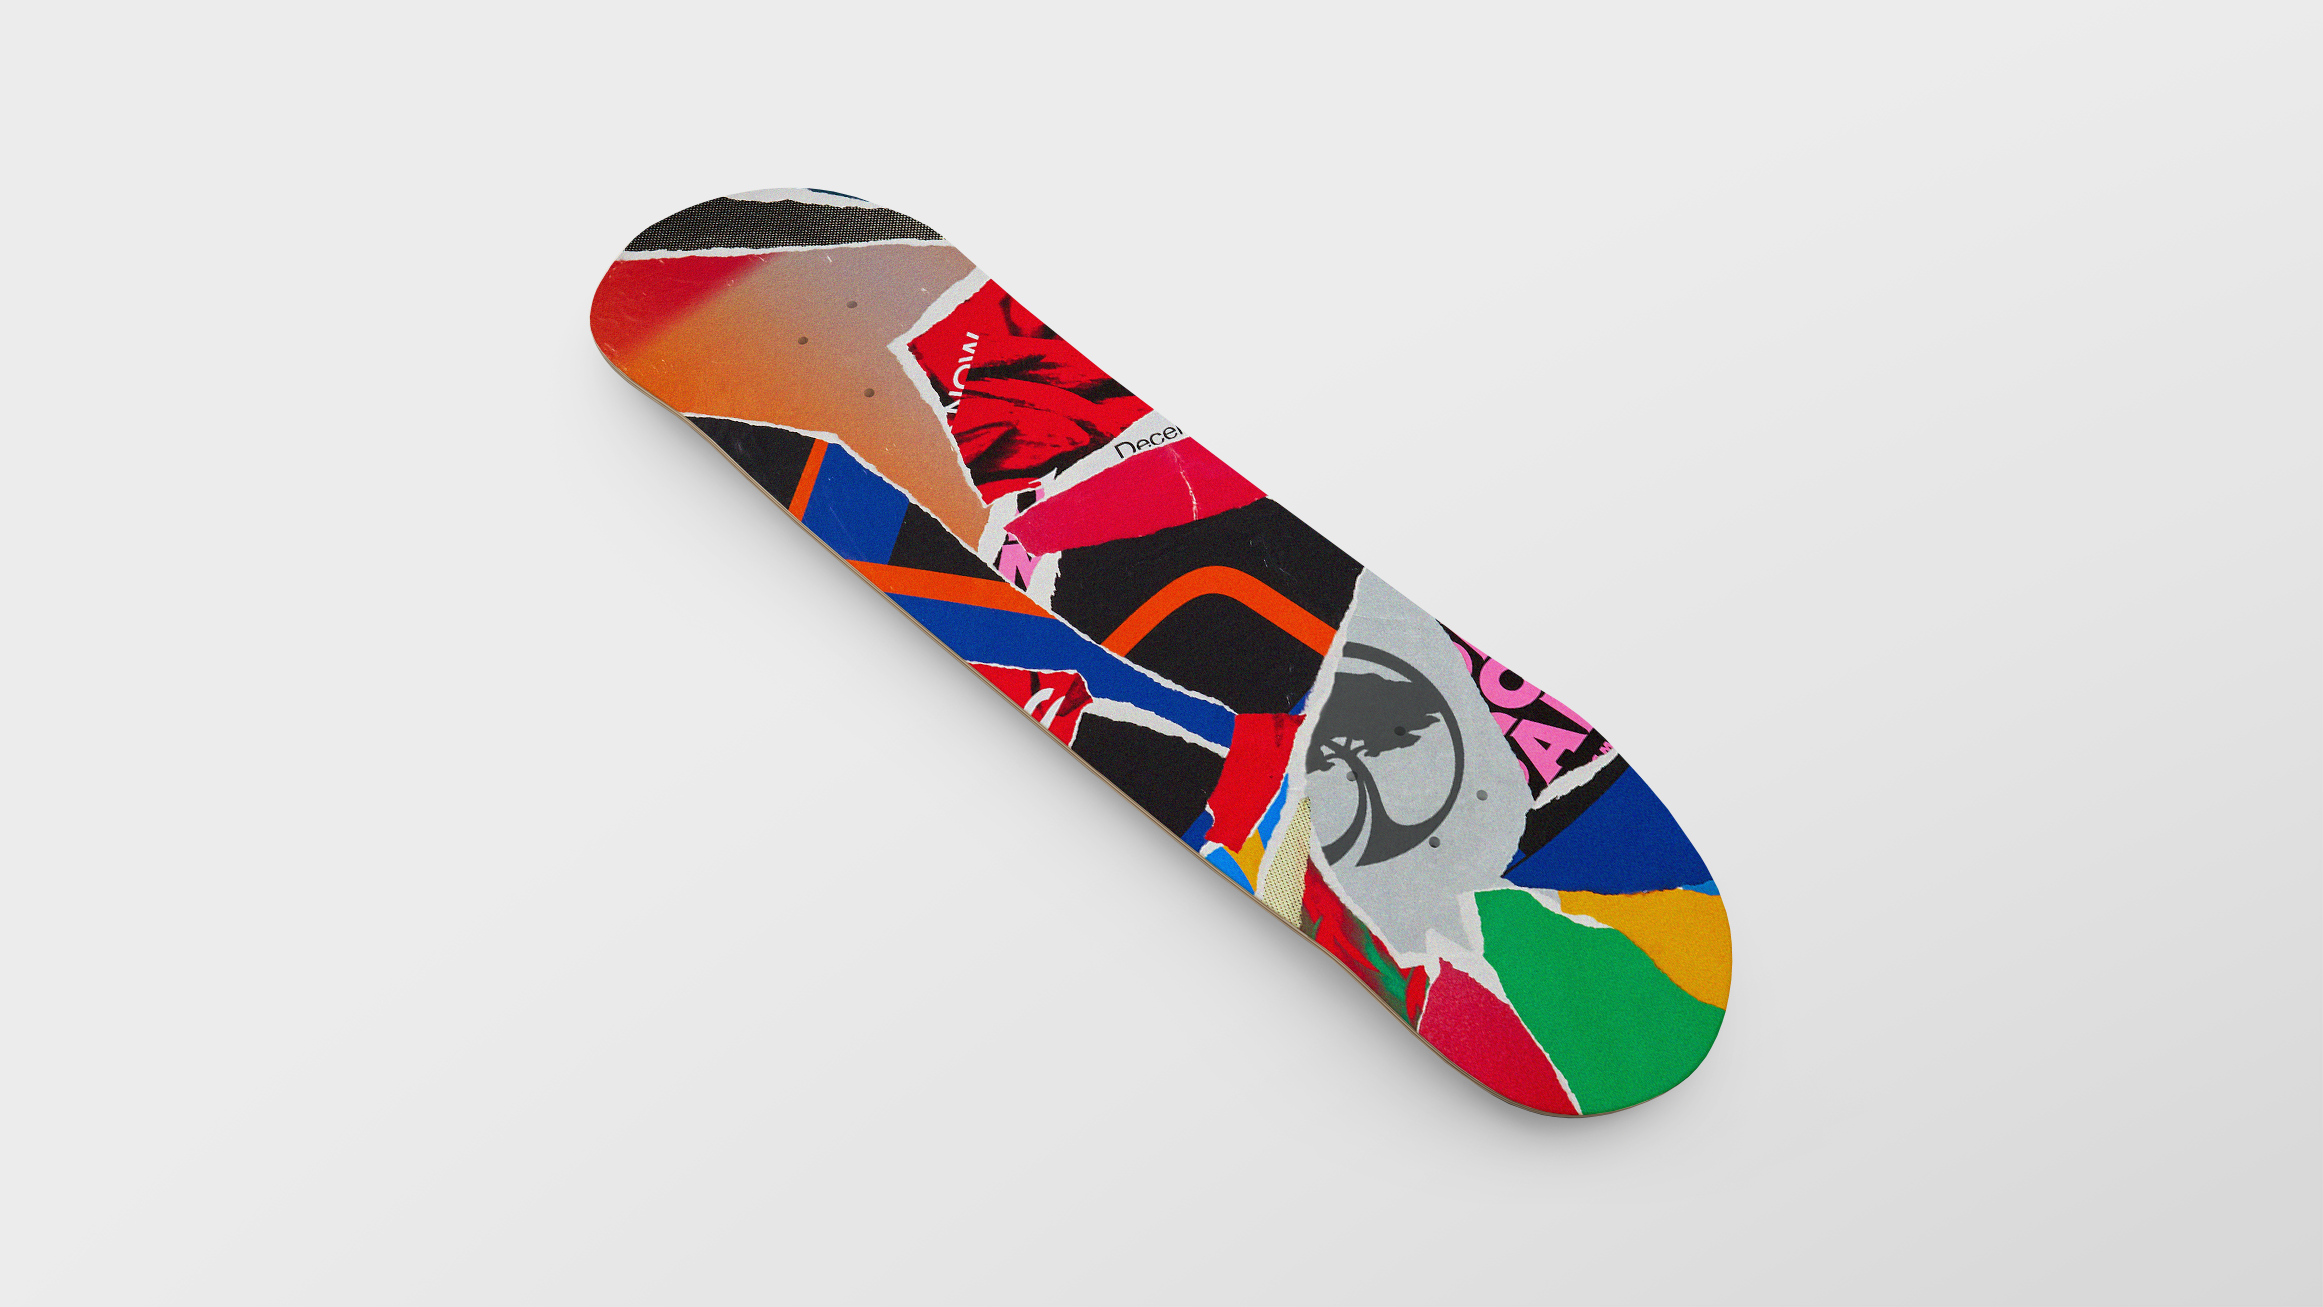 Arbor_Board_0023_Layer-Comp-24.png